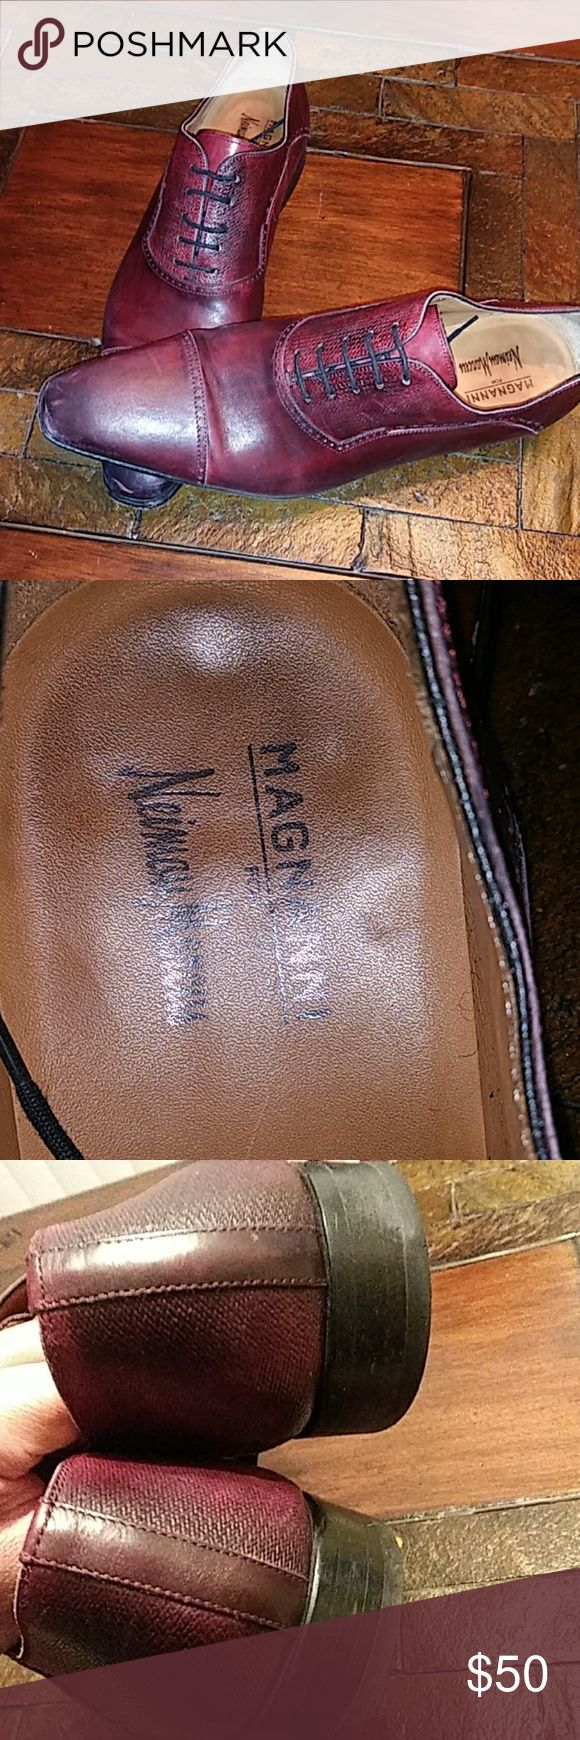 Magnanni Good condition ( burgundy color) Magnanni Shoes Loafers & Slip-Ons